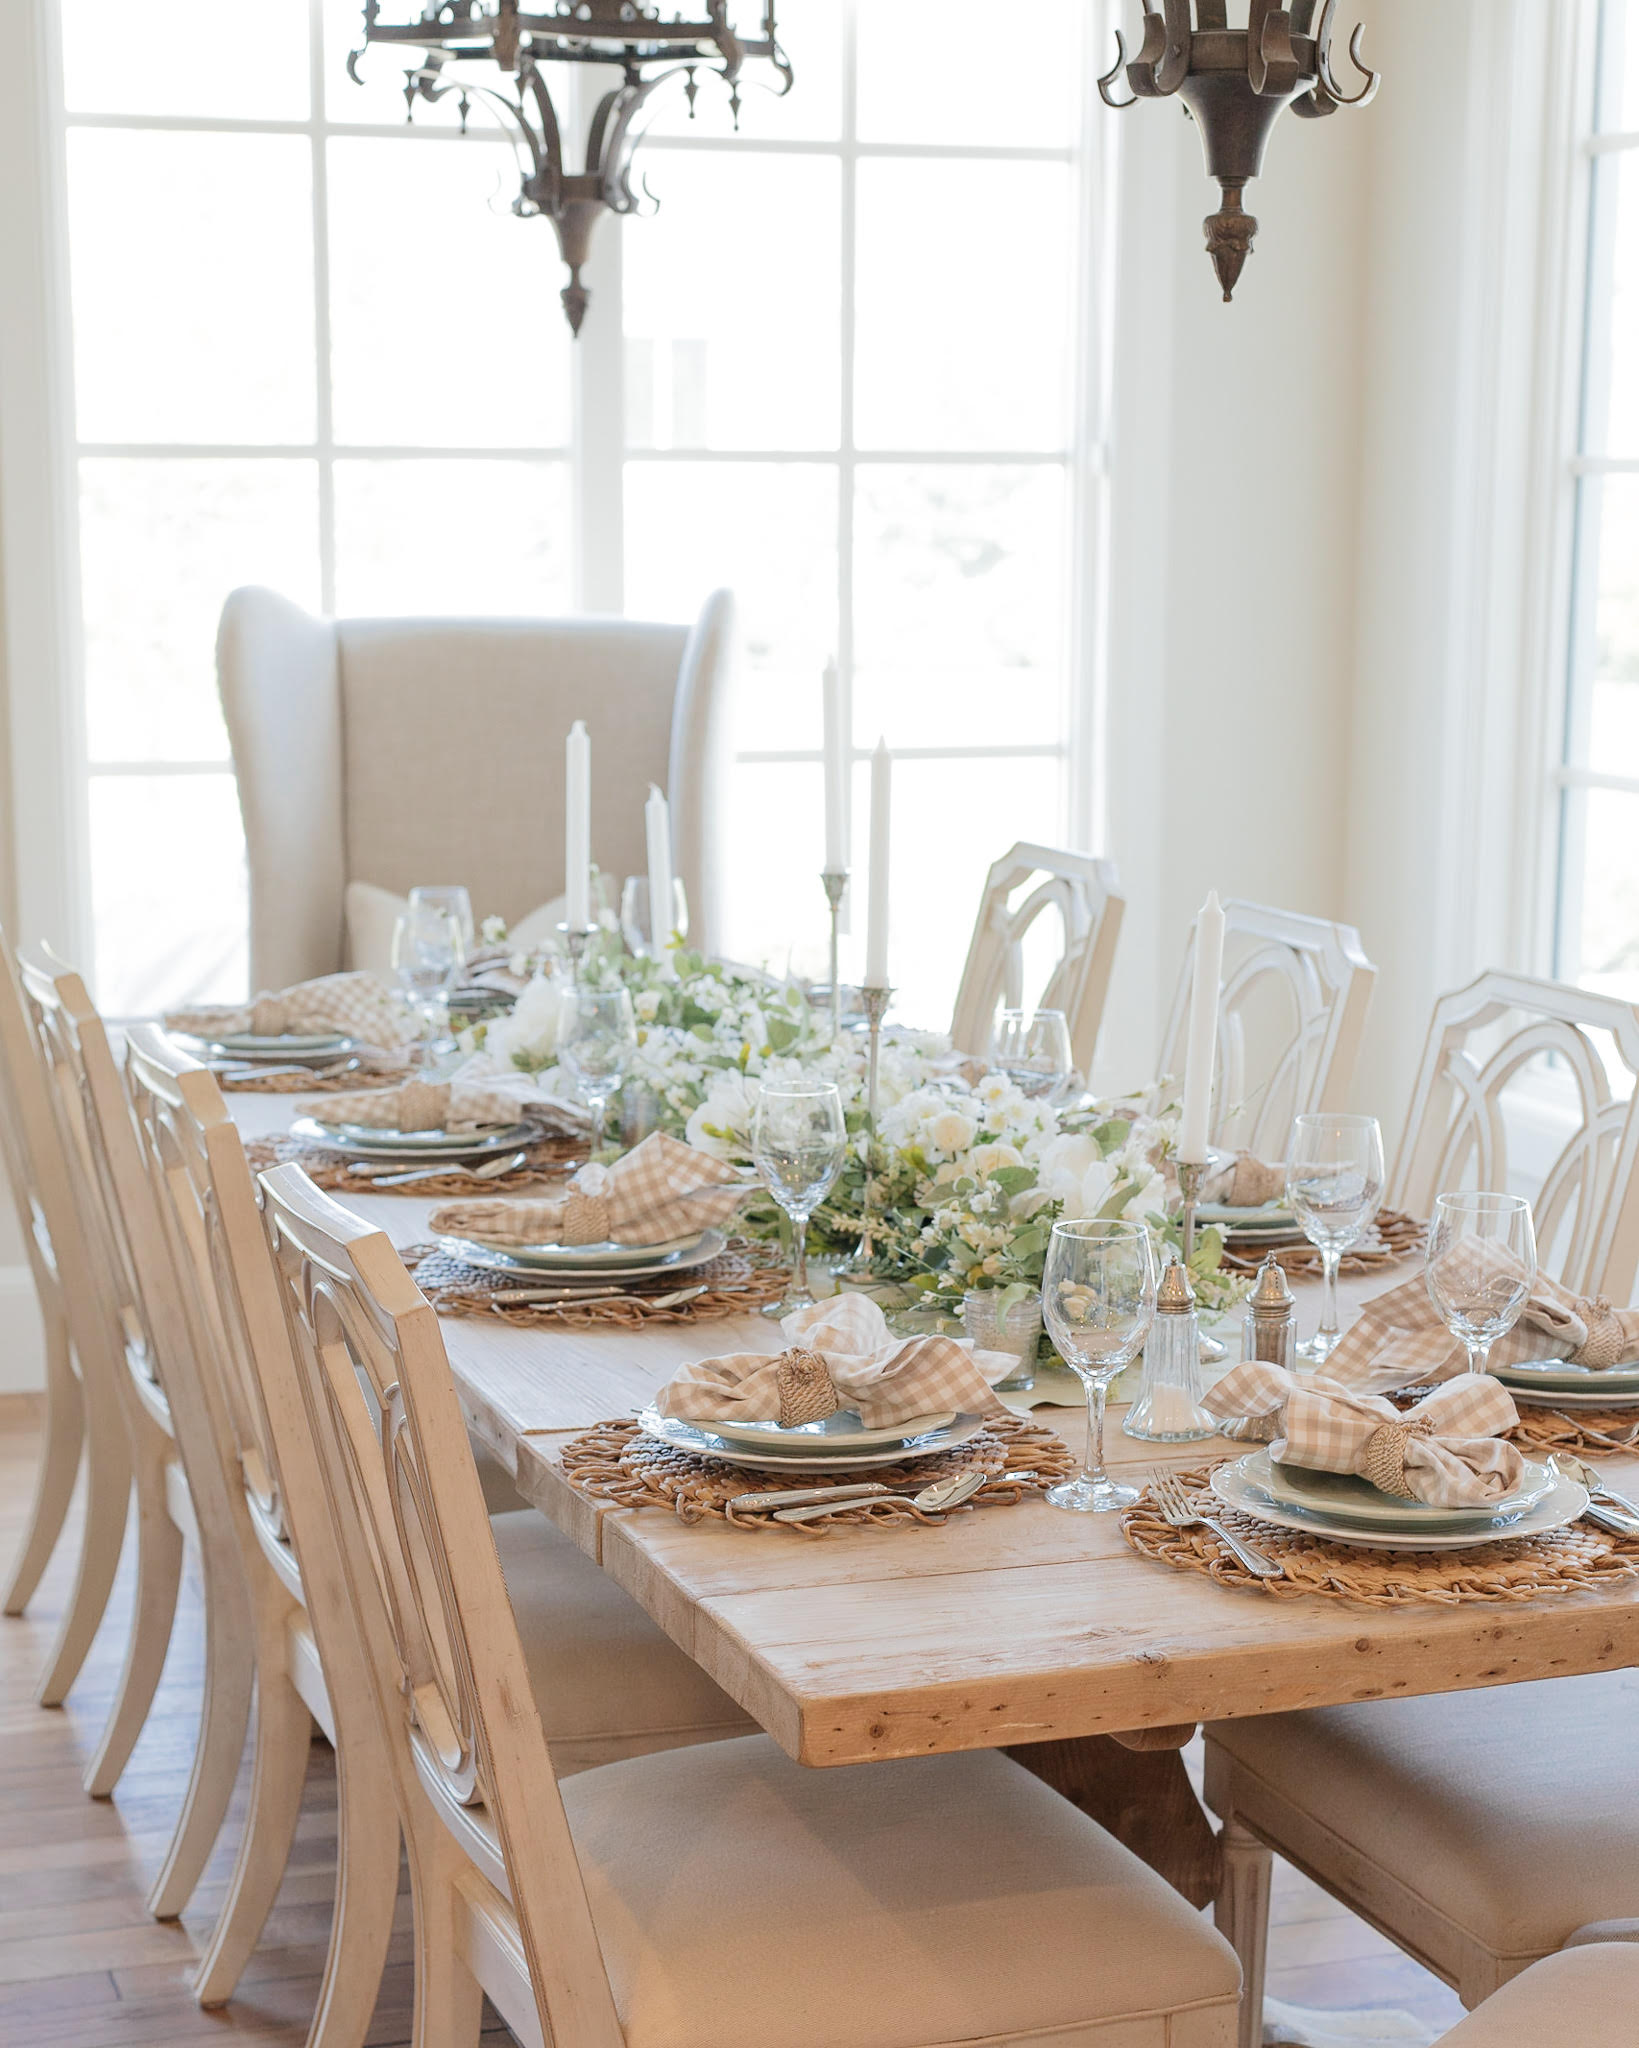 Holiday Hosting at Home - Fall Home Decor and Tablescapes